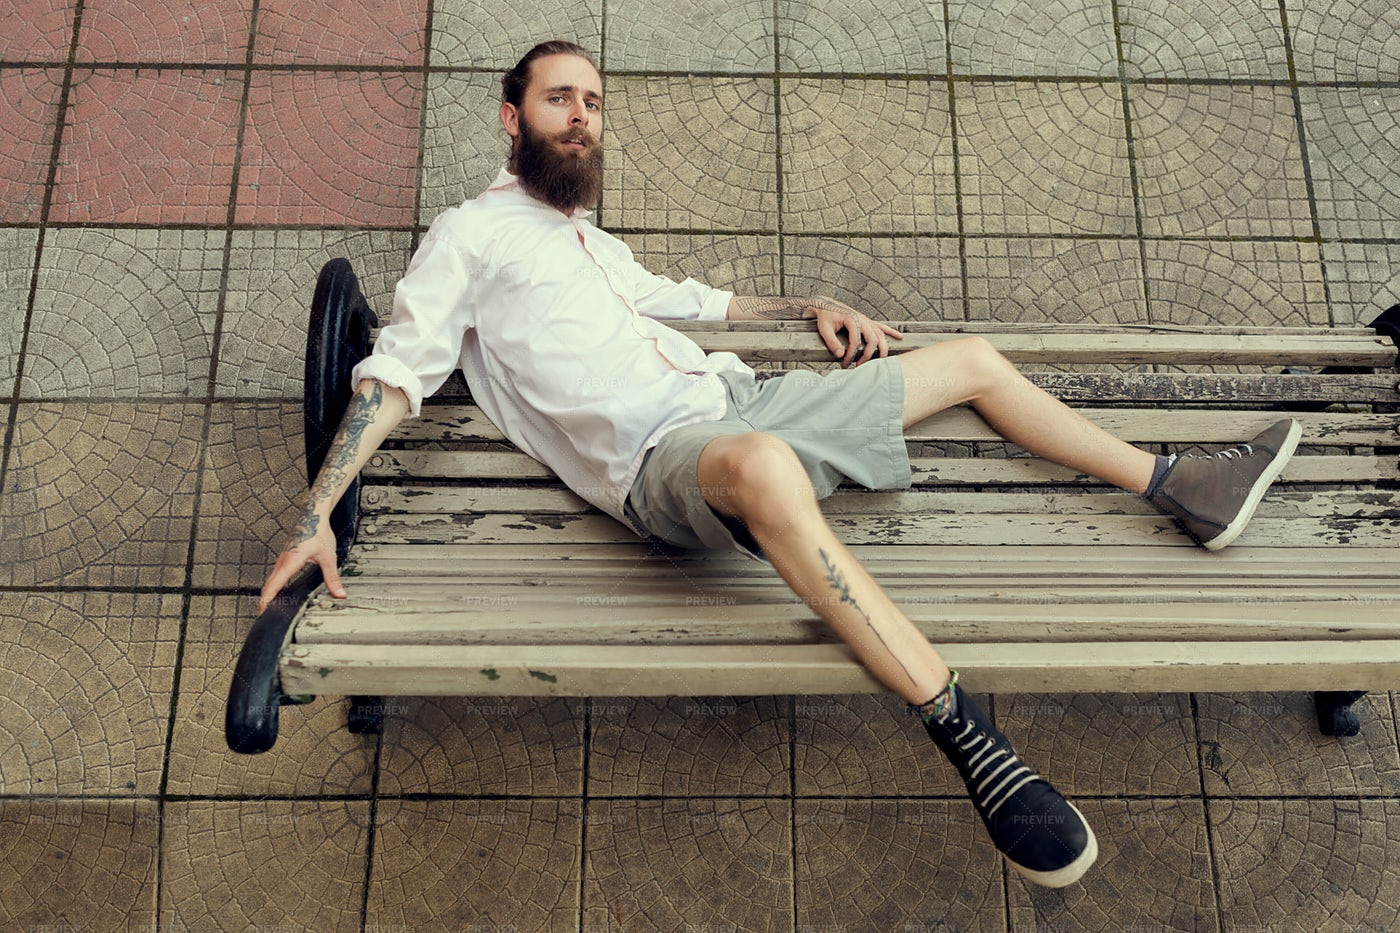 Hipster Leaning On Bench: Stock Photos